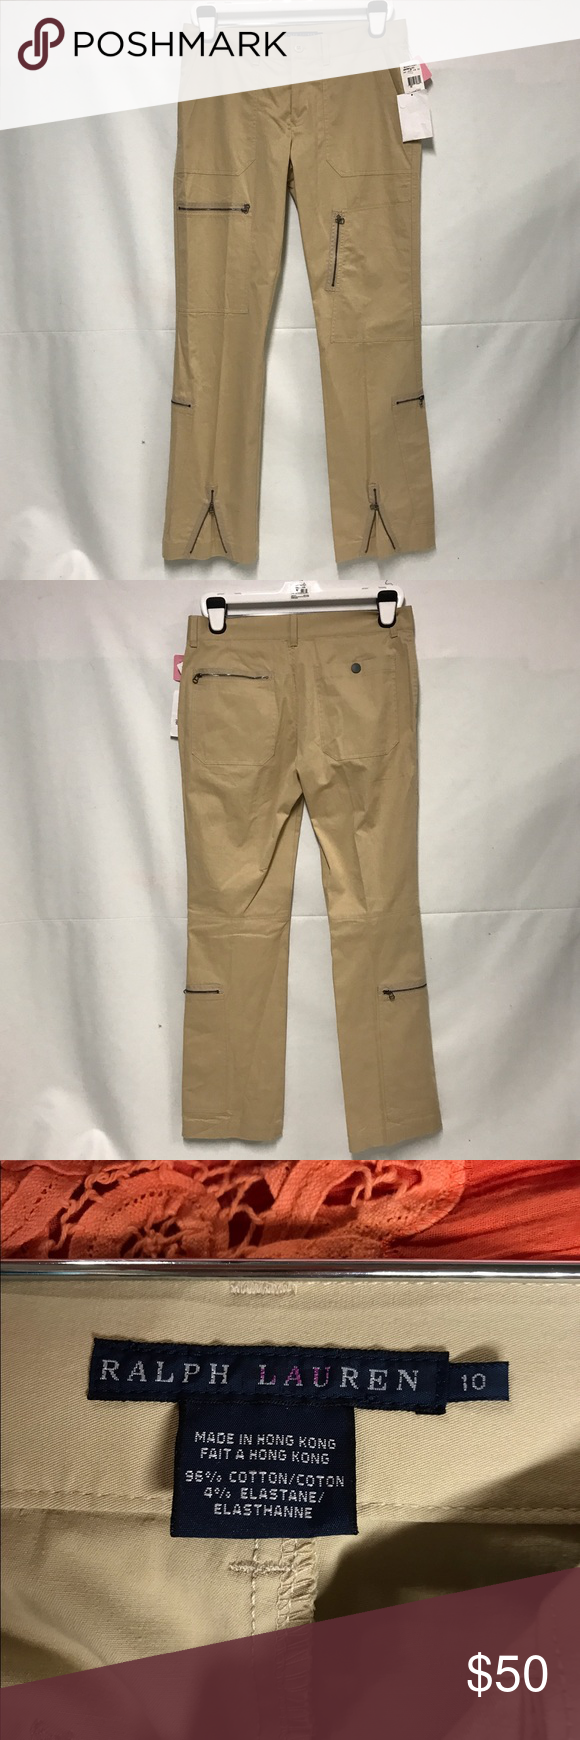 Ralph Lauren Blue label straight leg cargo pant New with tags straight leg cargo pants ralph lauren blue label Pants Trousers